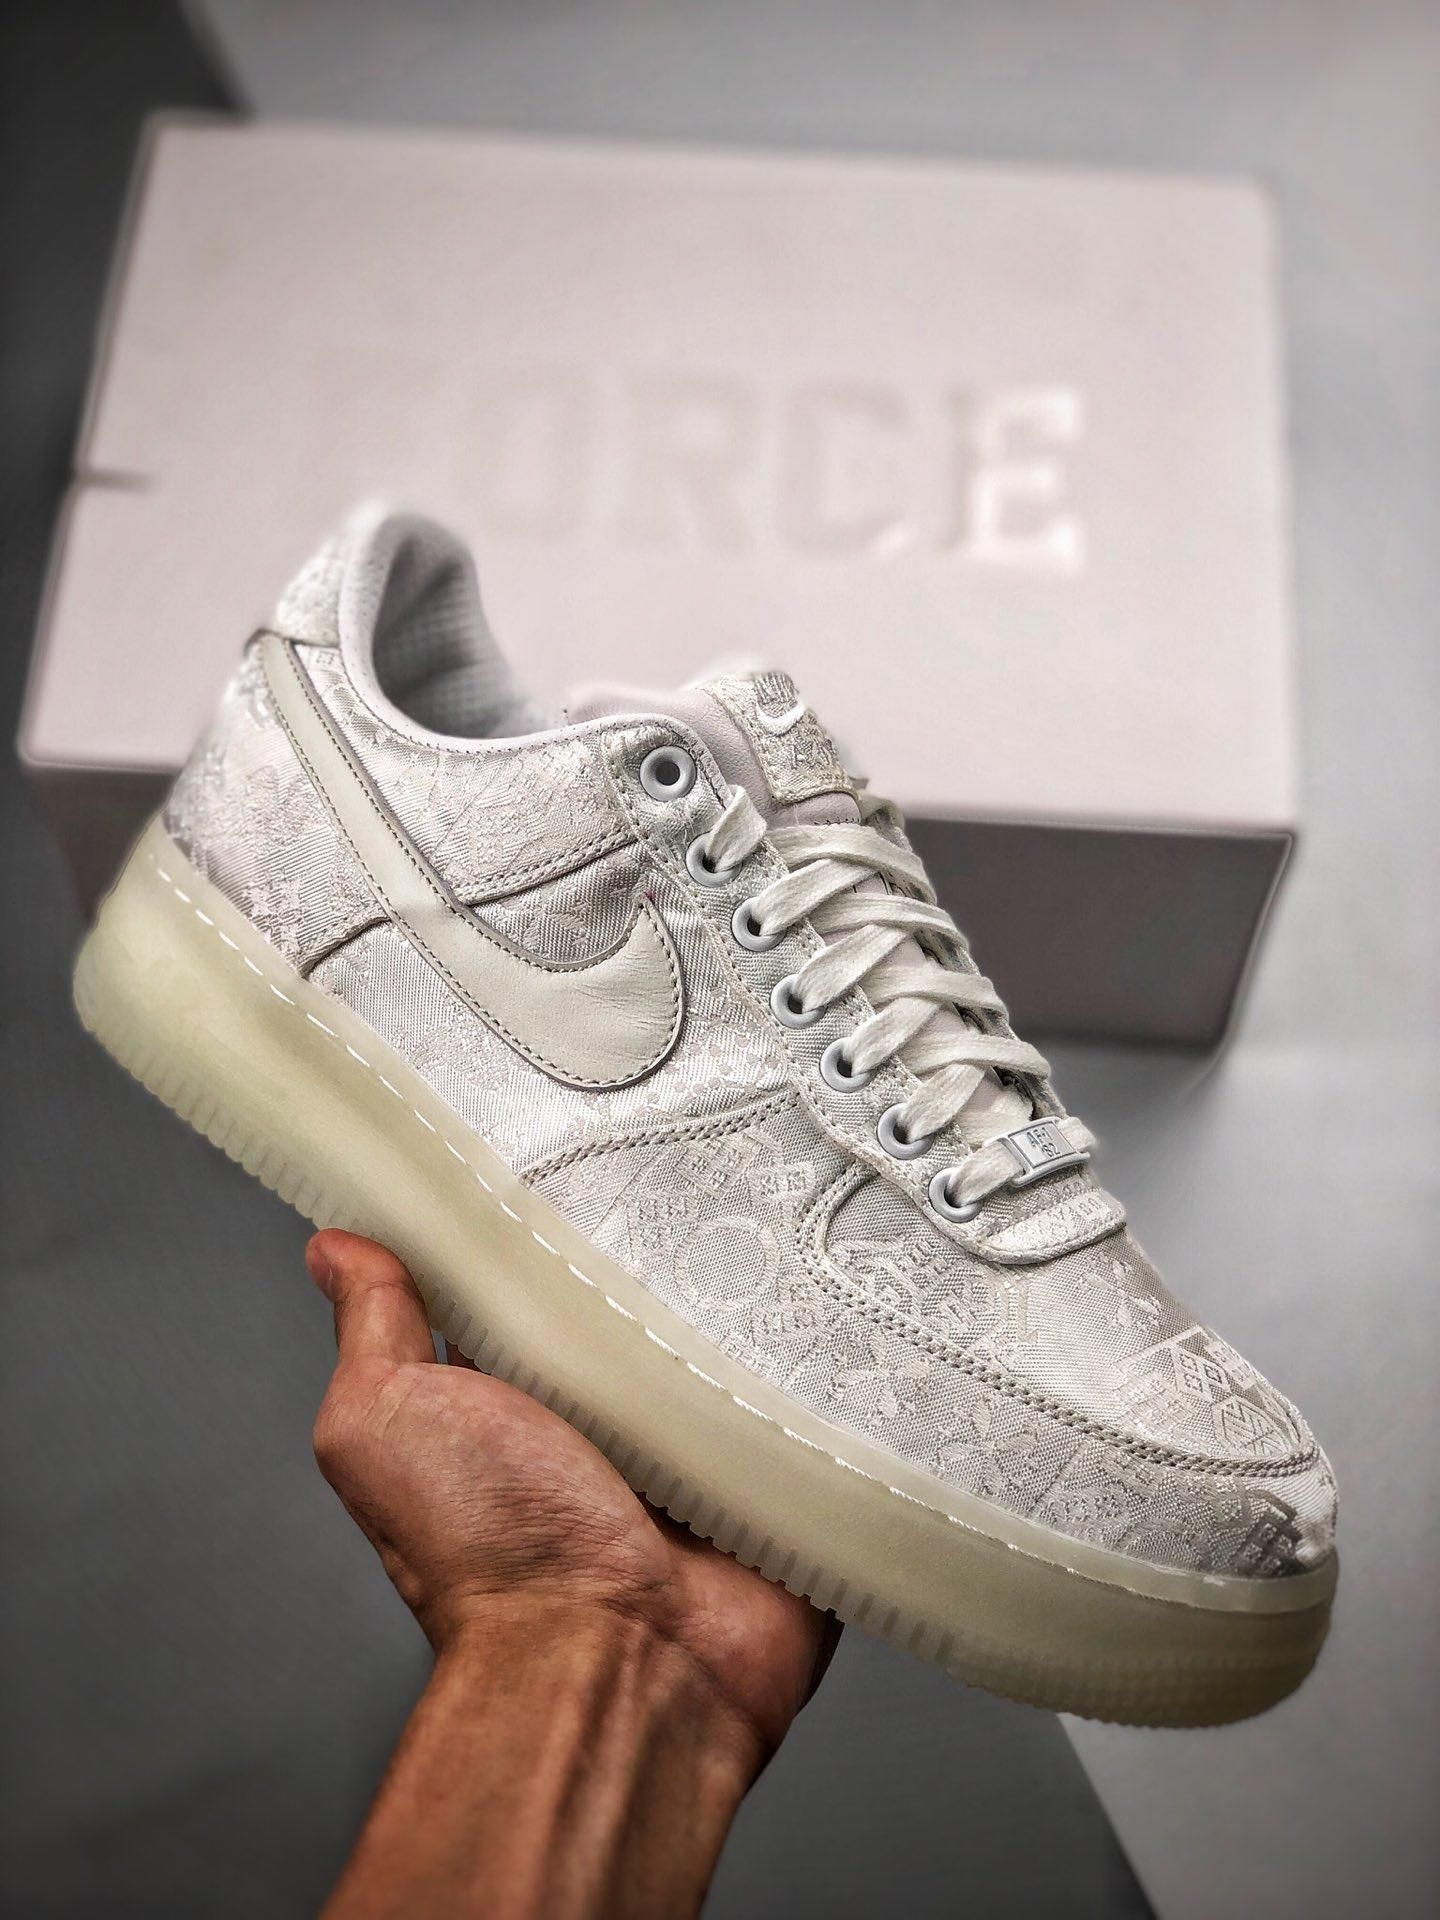 Clot x Nike Air Force 1 Premium AO9286 100